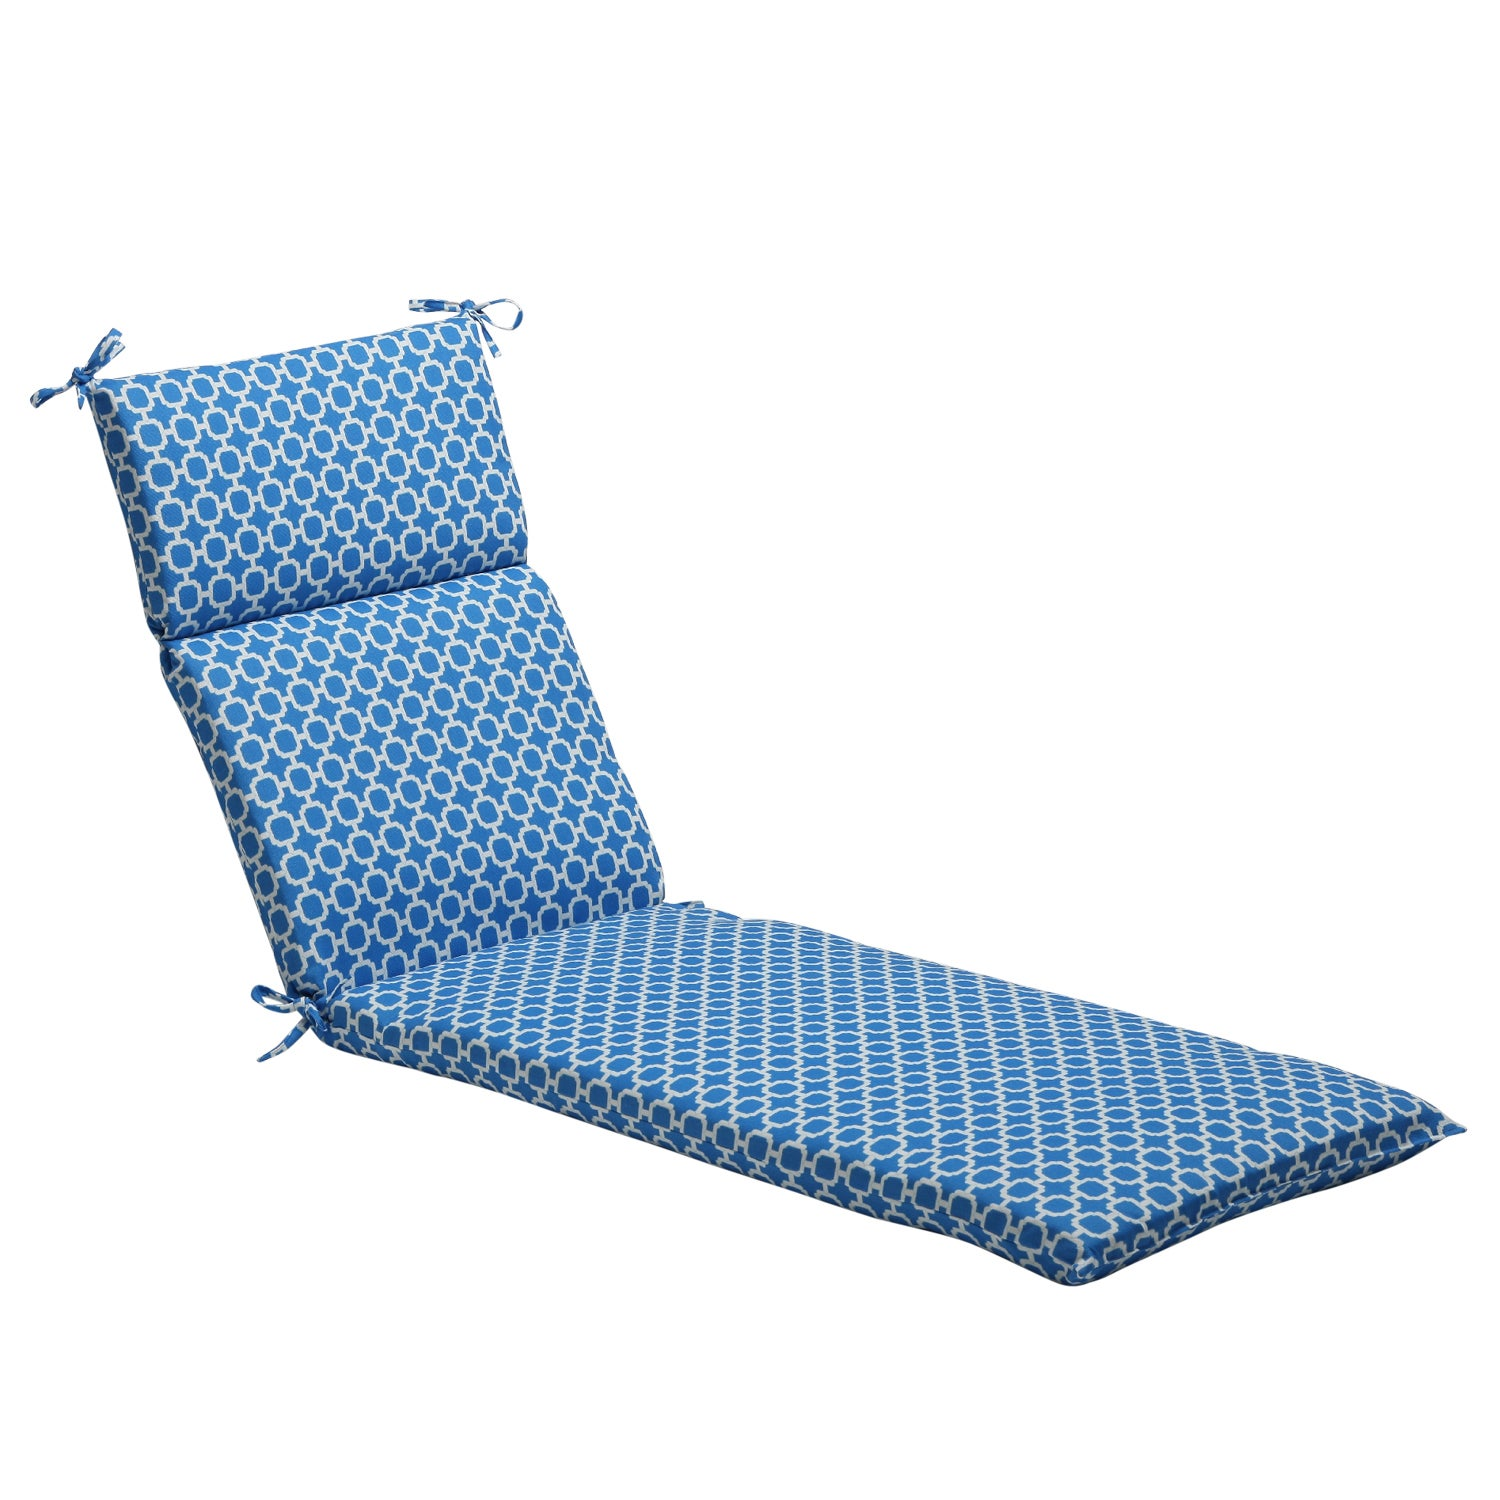 Pillow Perfect Blue/ White Geometric Outdoor Chaise Lounge Cushion